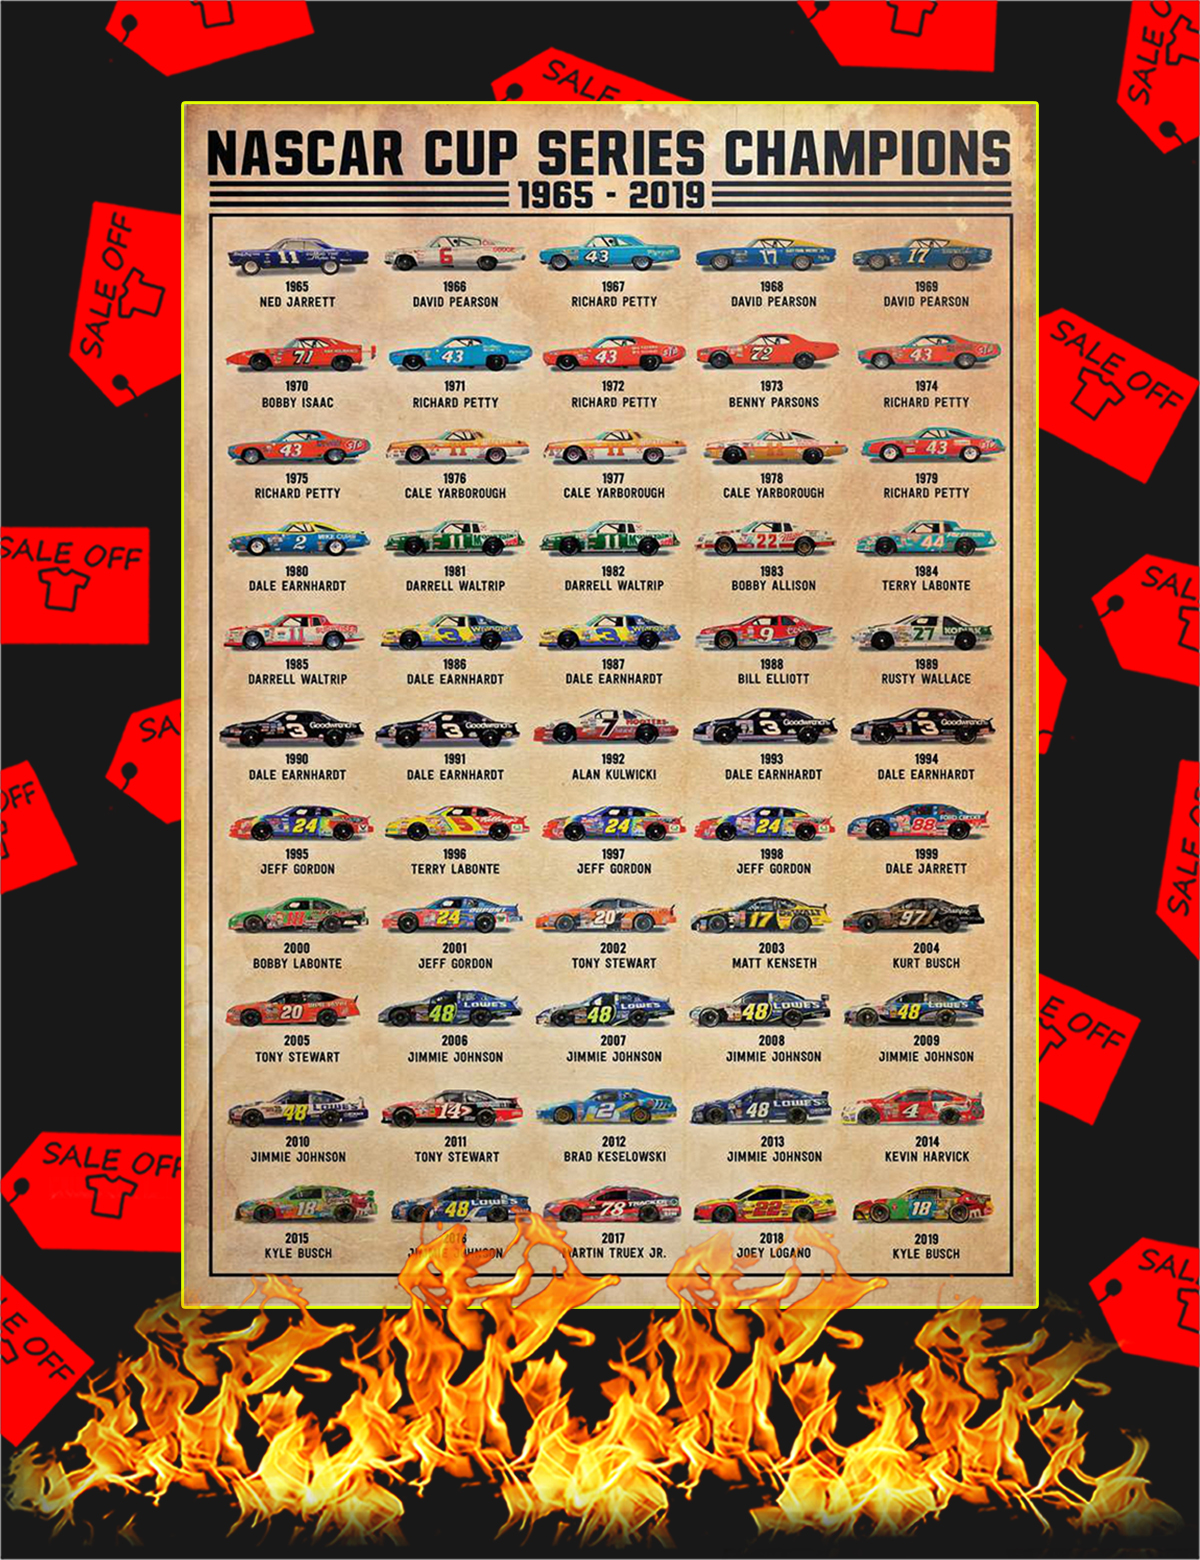 Nascar cup series champions 1965 2019 poster - A1